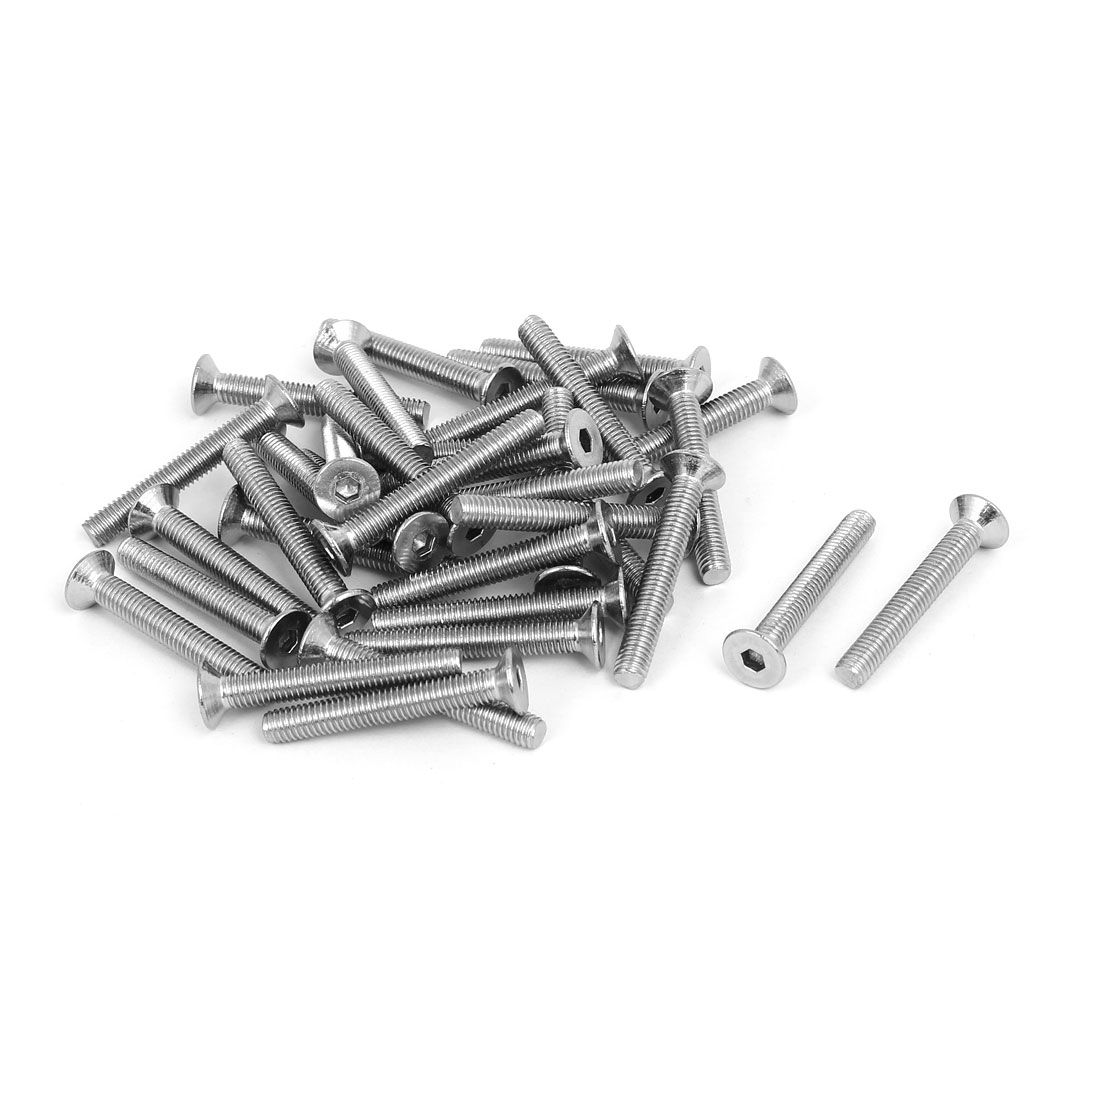 M5x35mm 304 Stainless Steel Flat Head Hex Socket Screws Fasteners DIN7991 35pcs